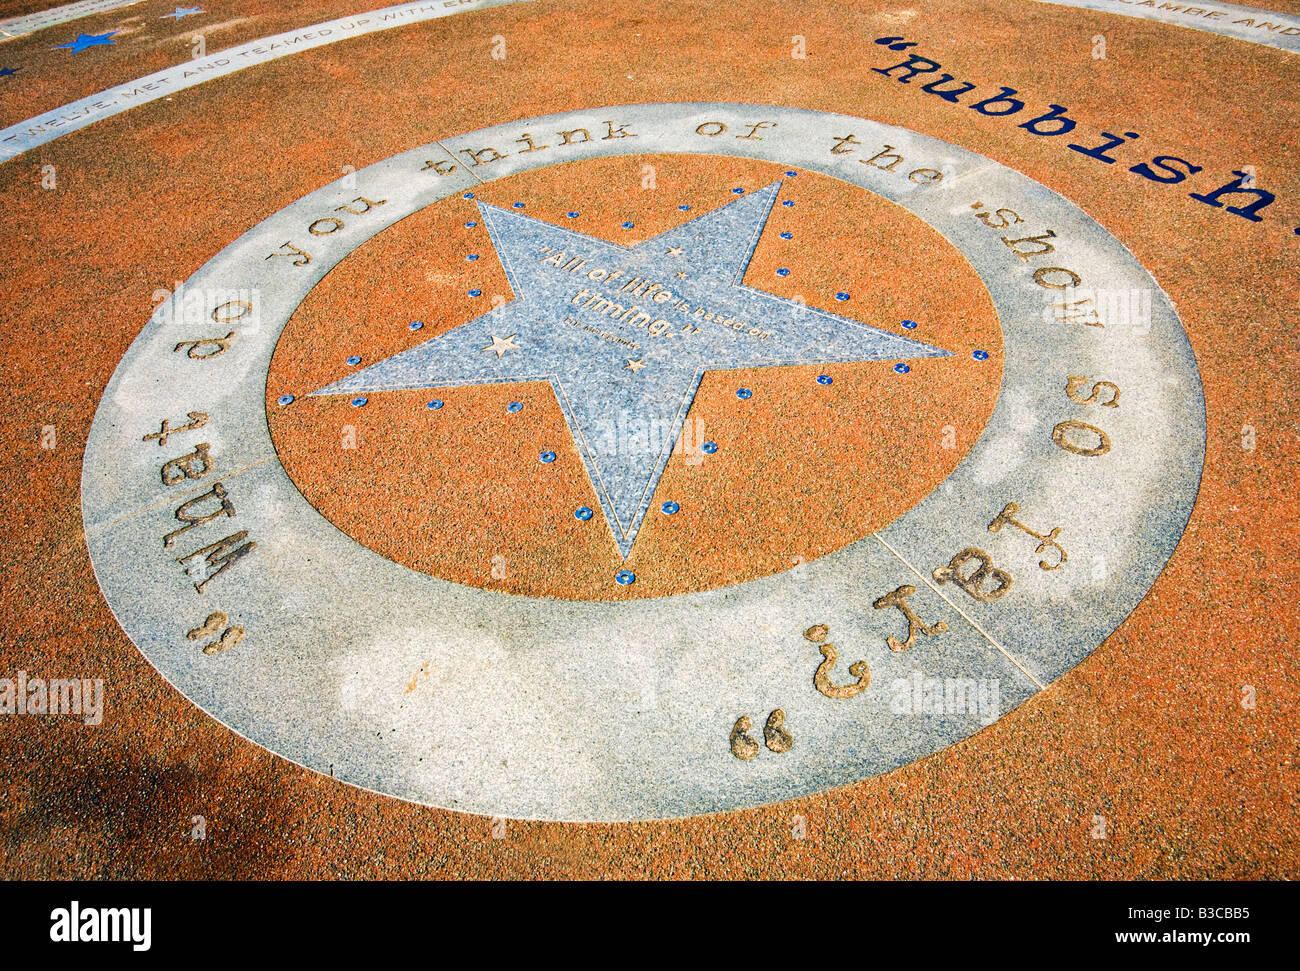 Inscribed showbiz star with quotes at the Eric Morecambe bronze statue memorial at Morecambe, Lancashire, England, - Stock Image